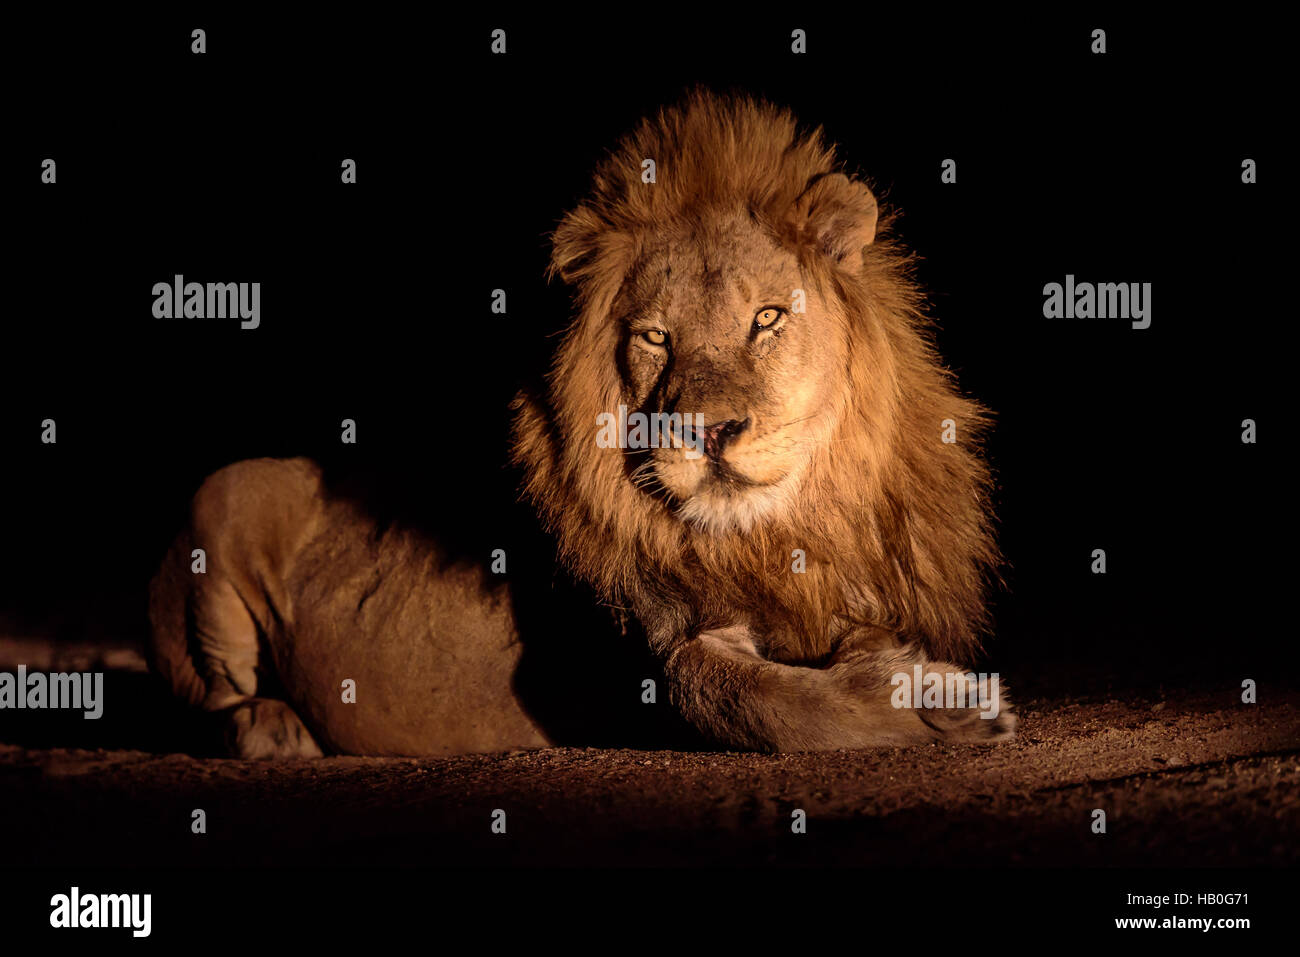 Stunning male lion laying down in the cover of darkness - Stock Image